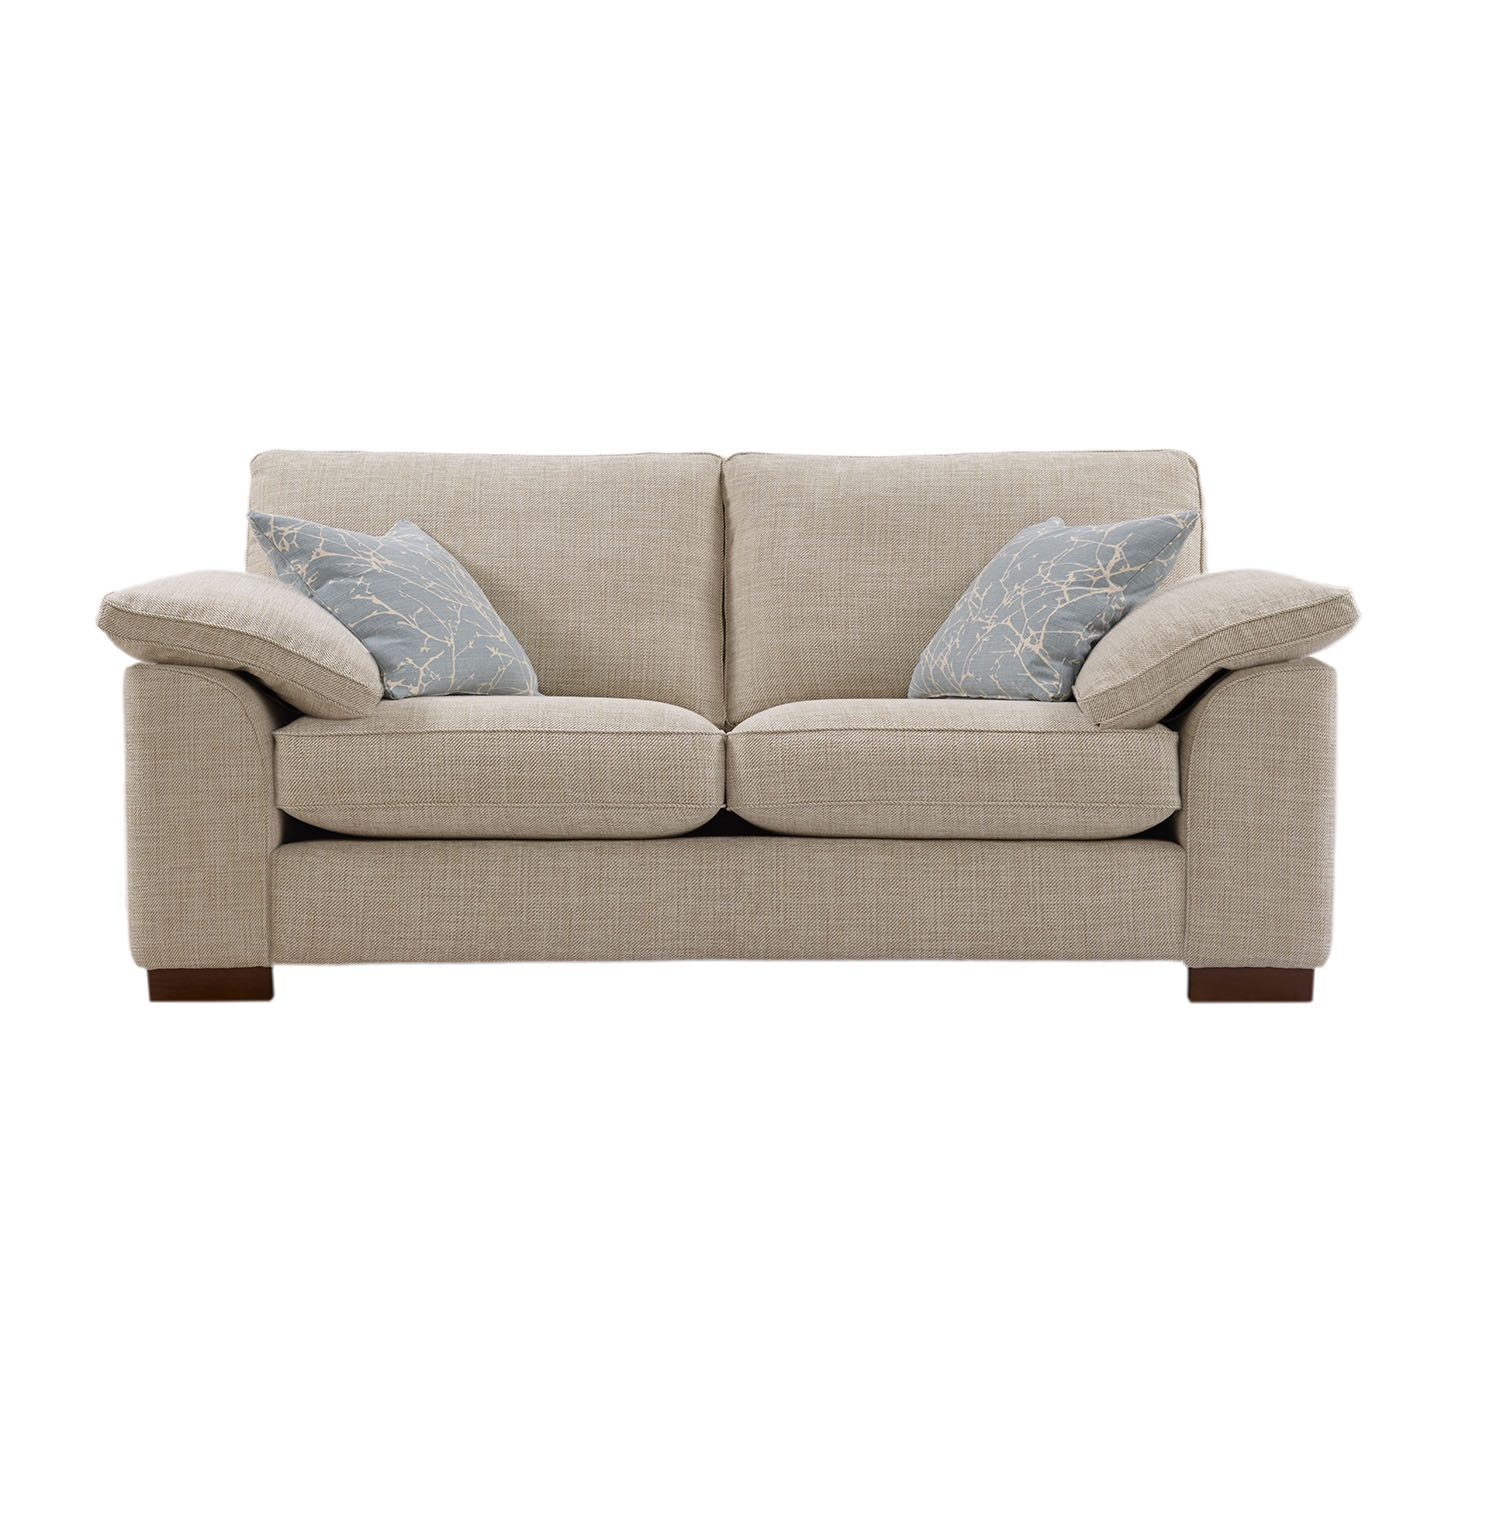 Leyton 3 Seater Sofa